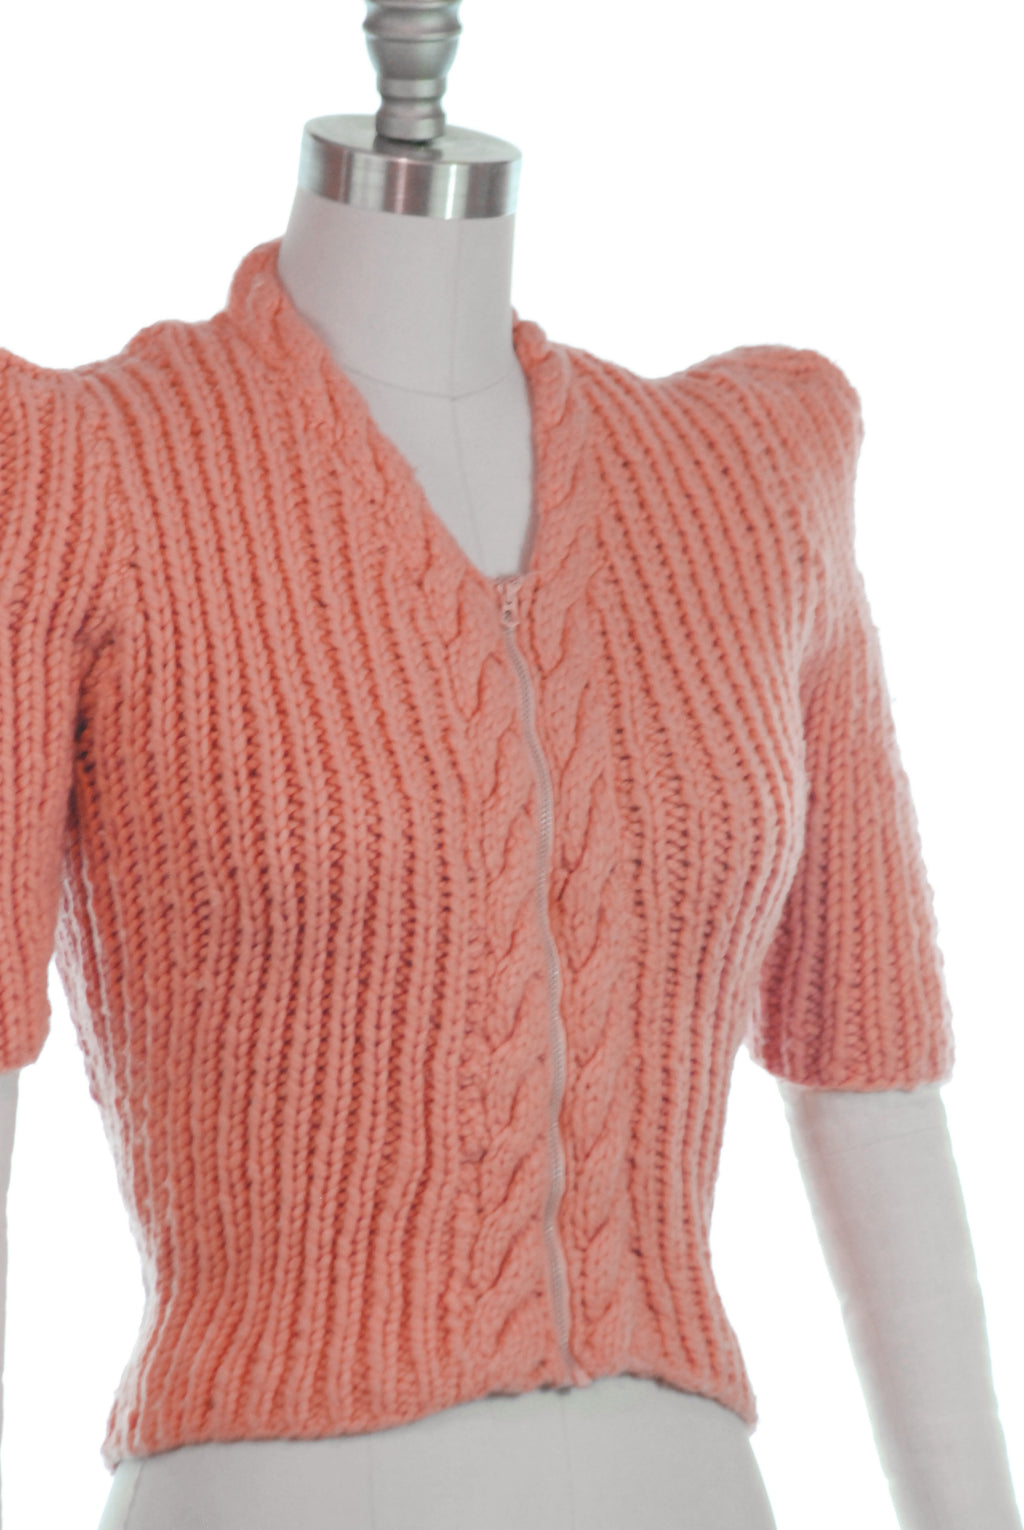 RARE Late 1930s Chunky Pink Sweater with Bell Zipper Front Closure and Peaked Sleeves